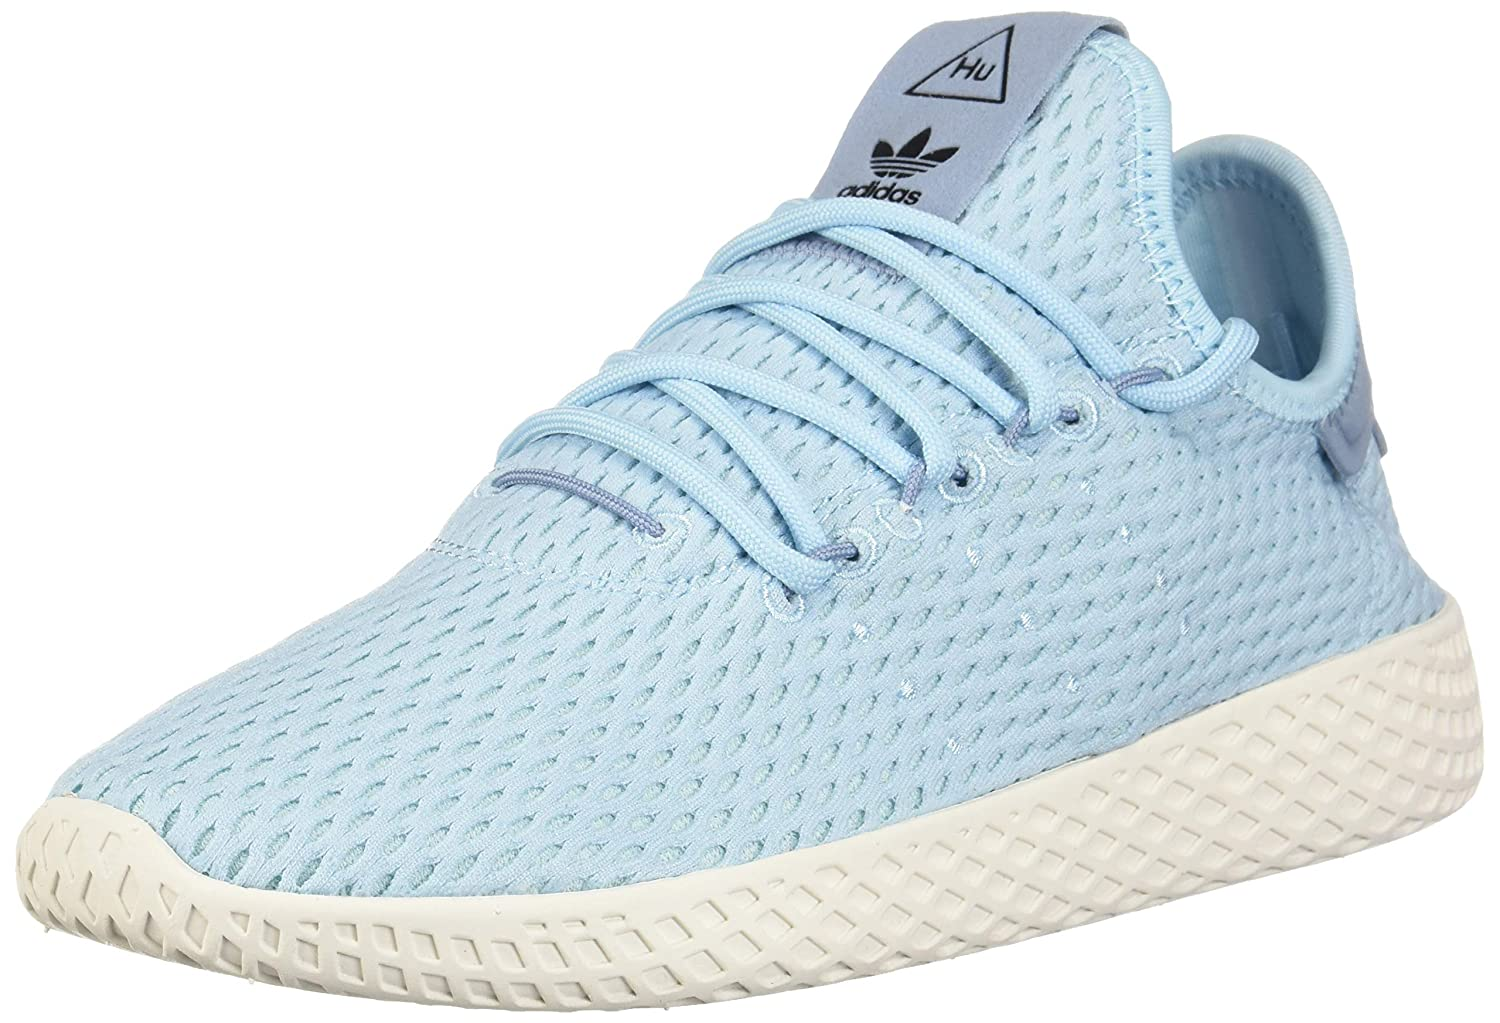 outlet store 42ded 1ef9c Amazon.com   adidas Pharrell Williams Tennis HU (Kids)   Sneakers